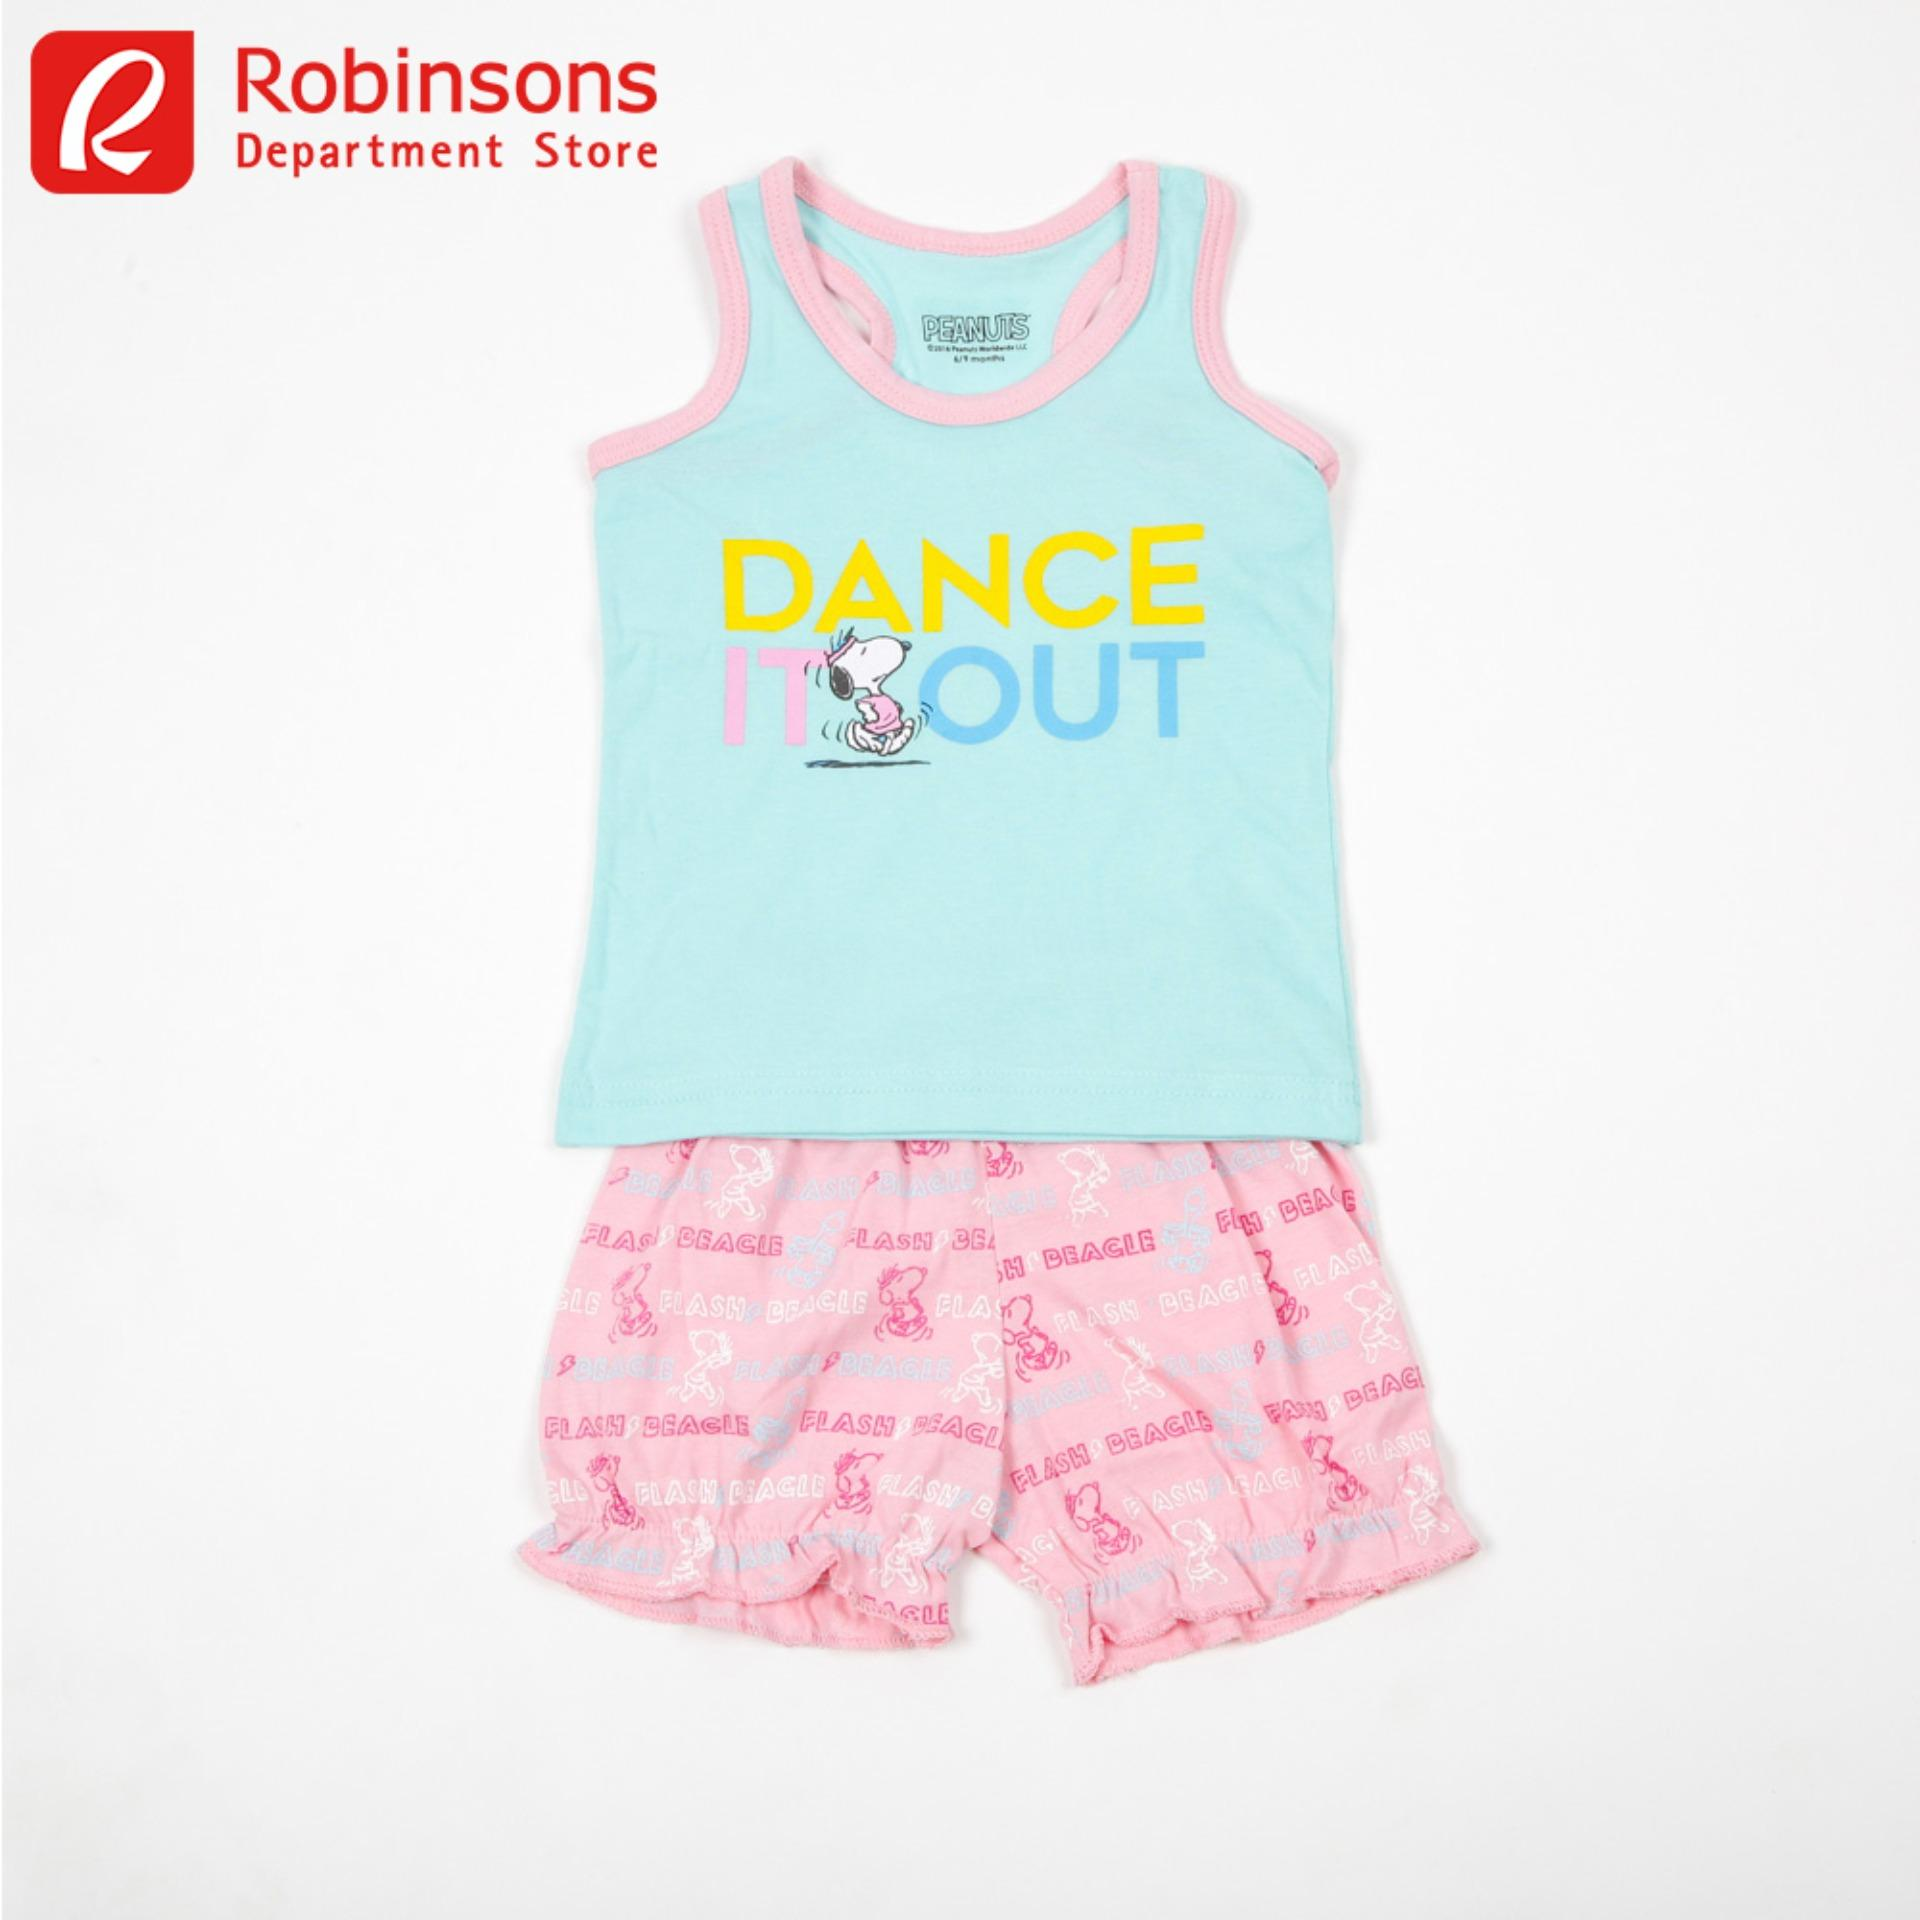 2bad6d56e0d Baby Clothes for sale - Baby Clothing online brands